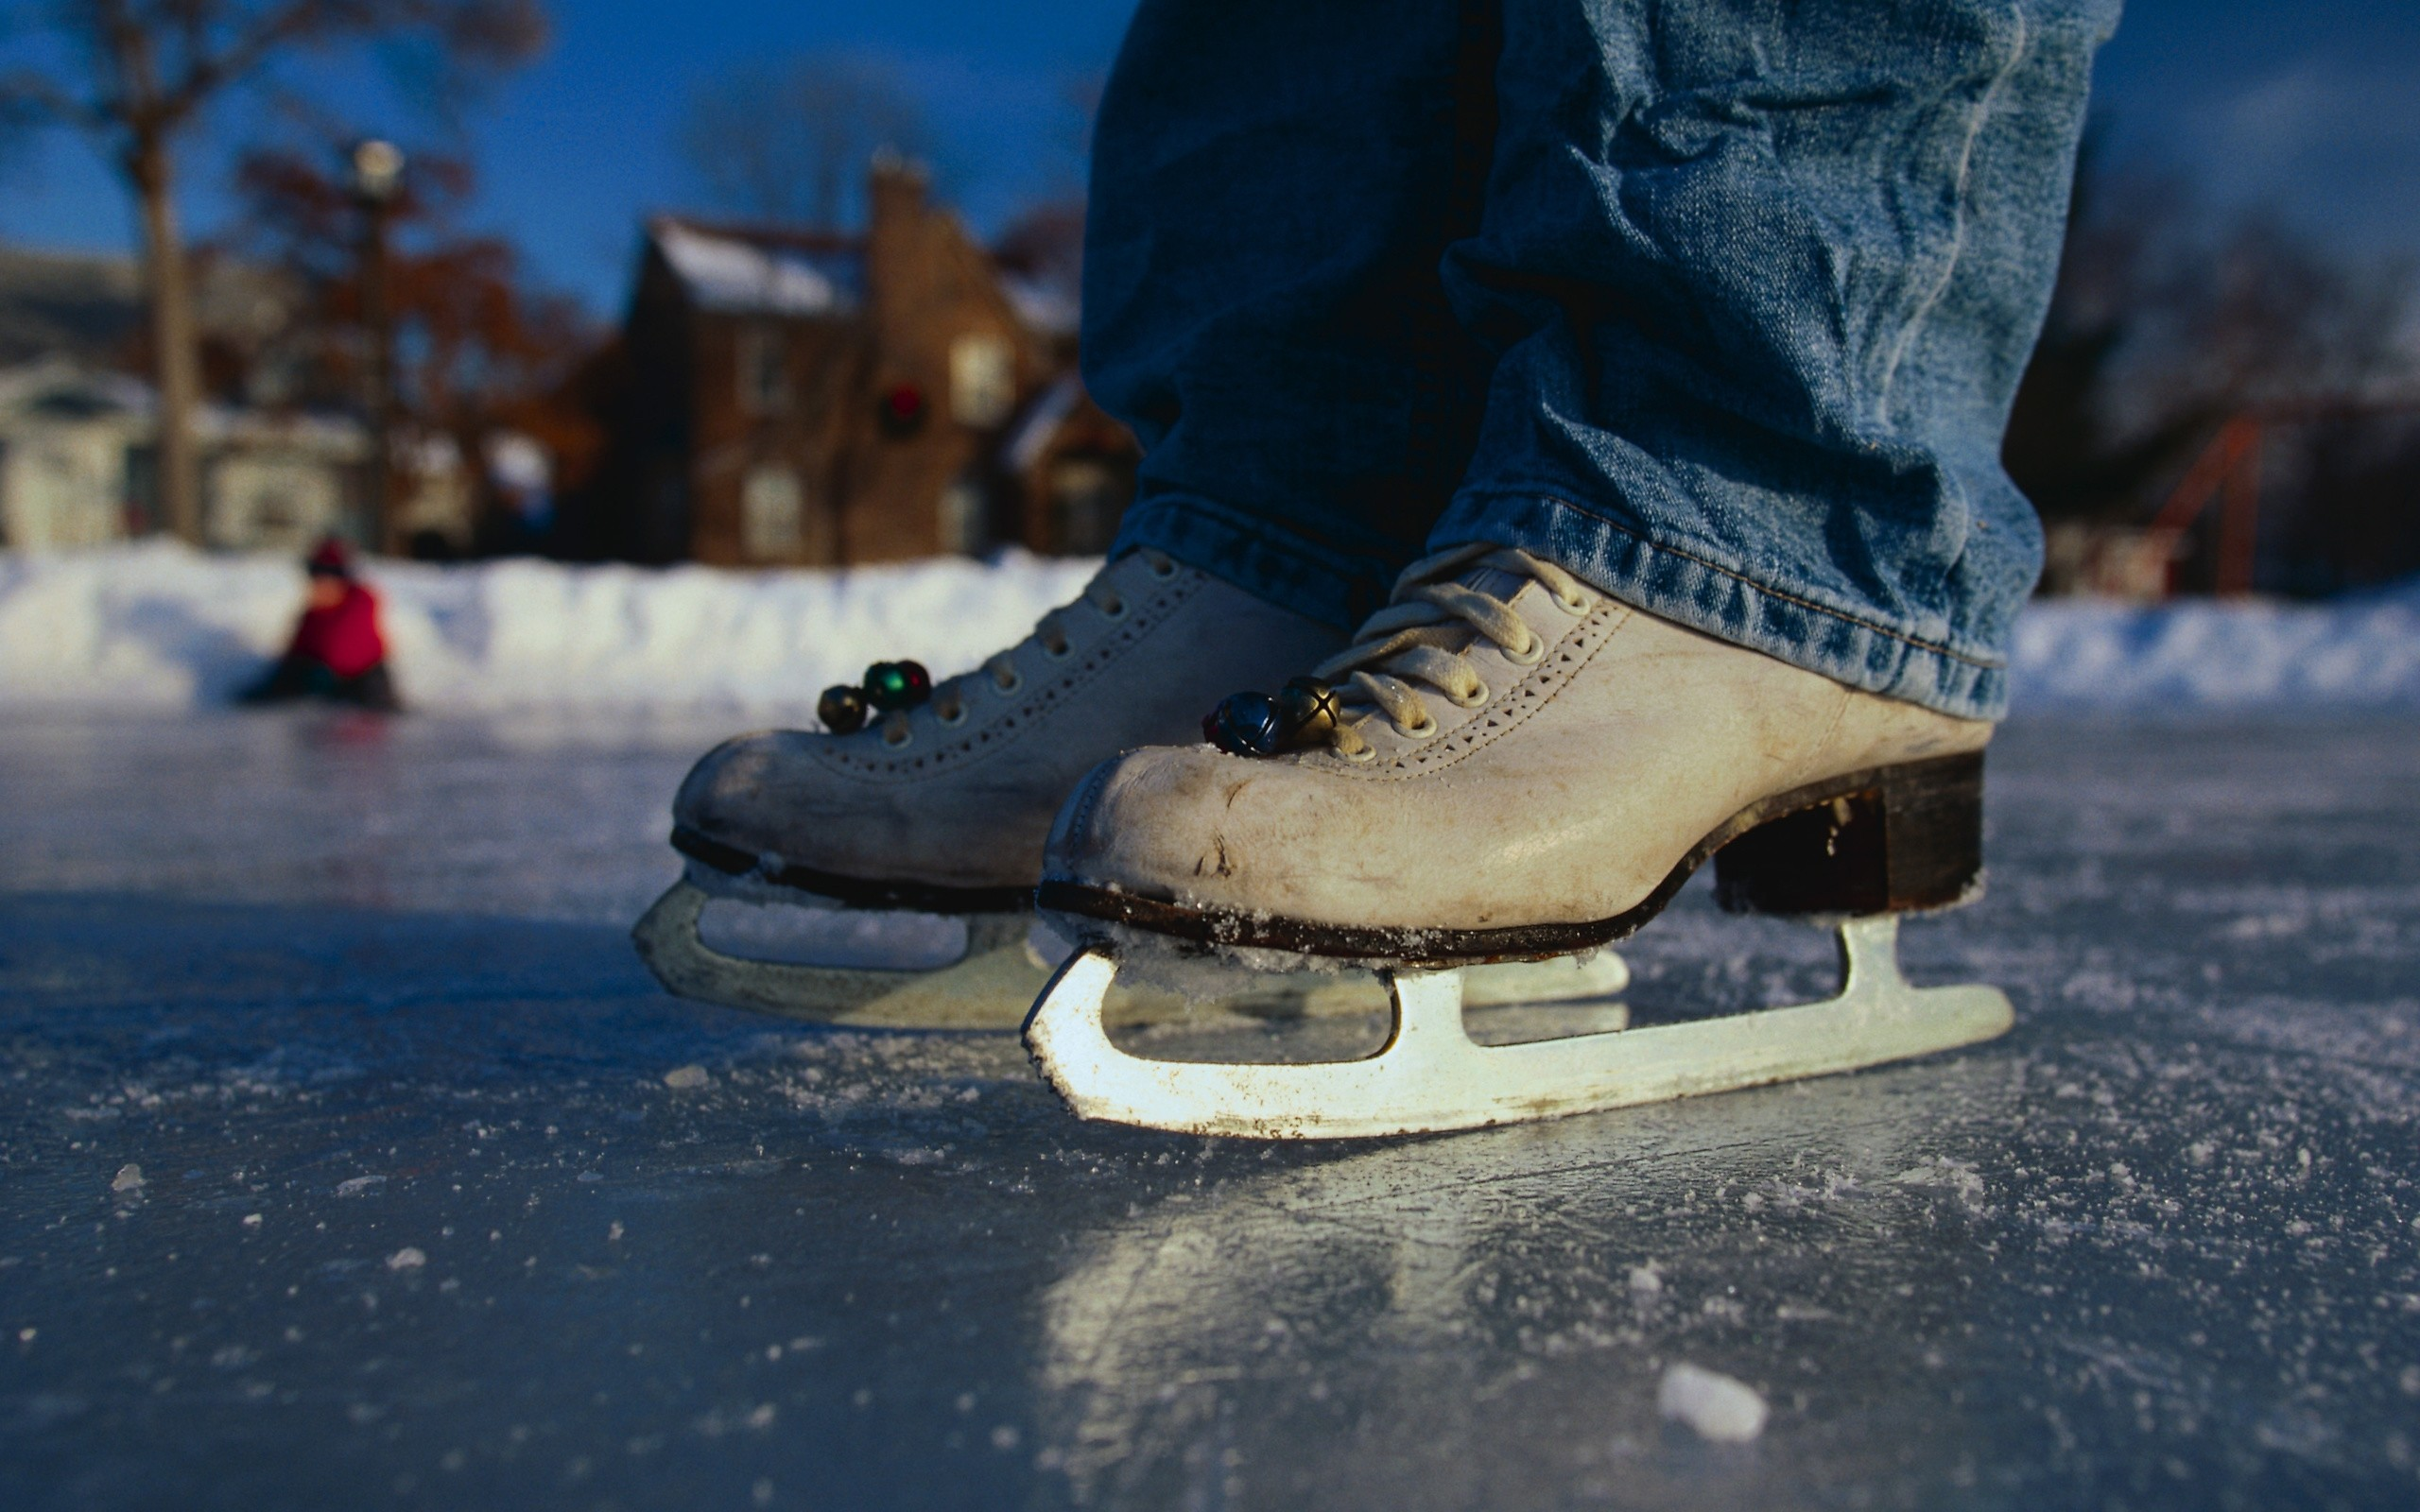 Res: 2560x1600, Freezing, Hockey Field, Ice Skating, Ice Rink, Sport HD Wallpaper, Sport  Picture, Background and Image